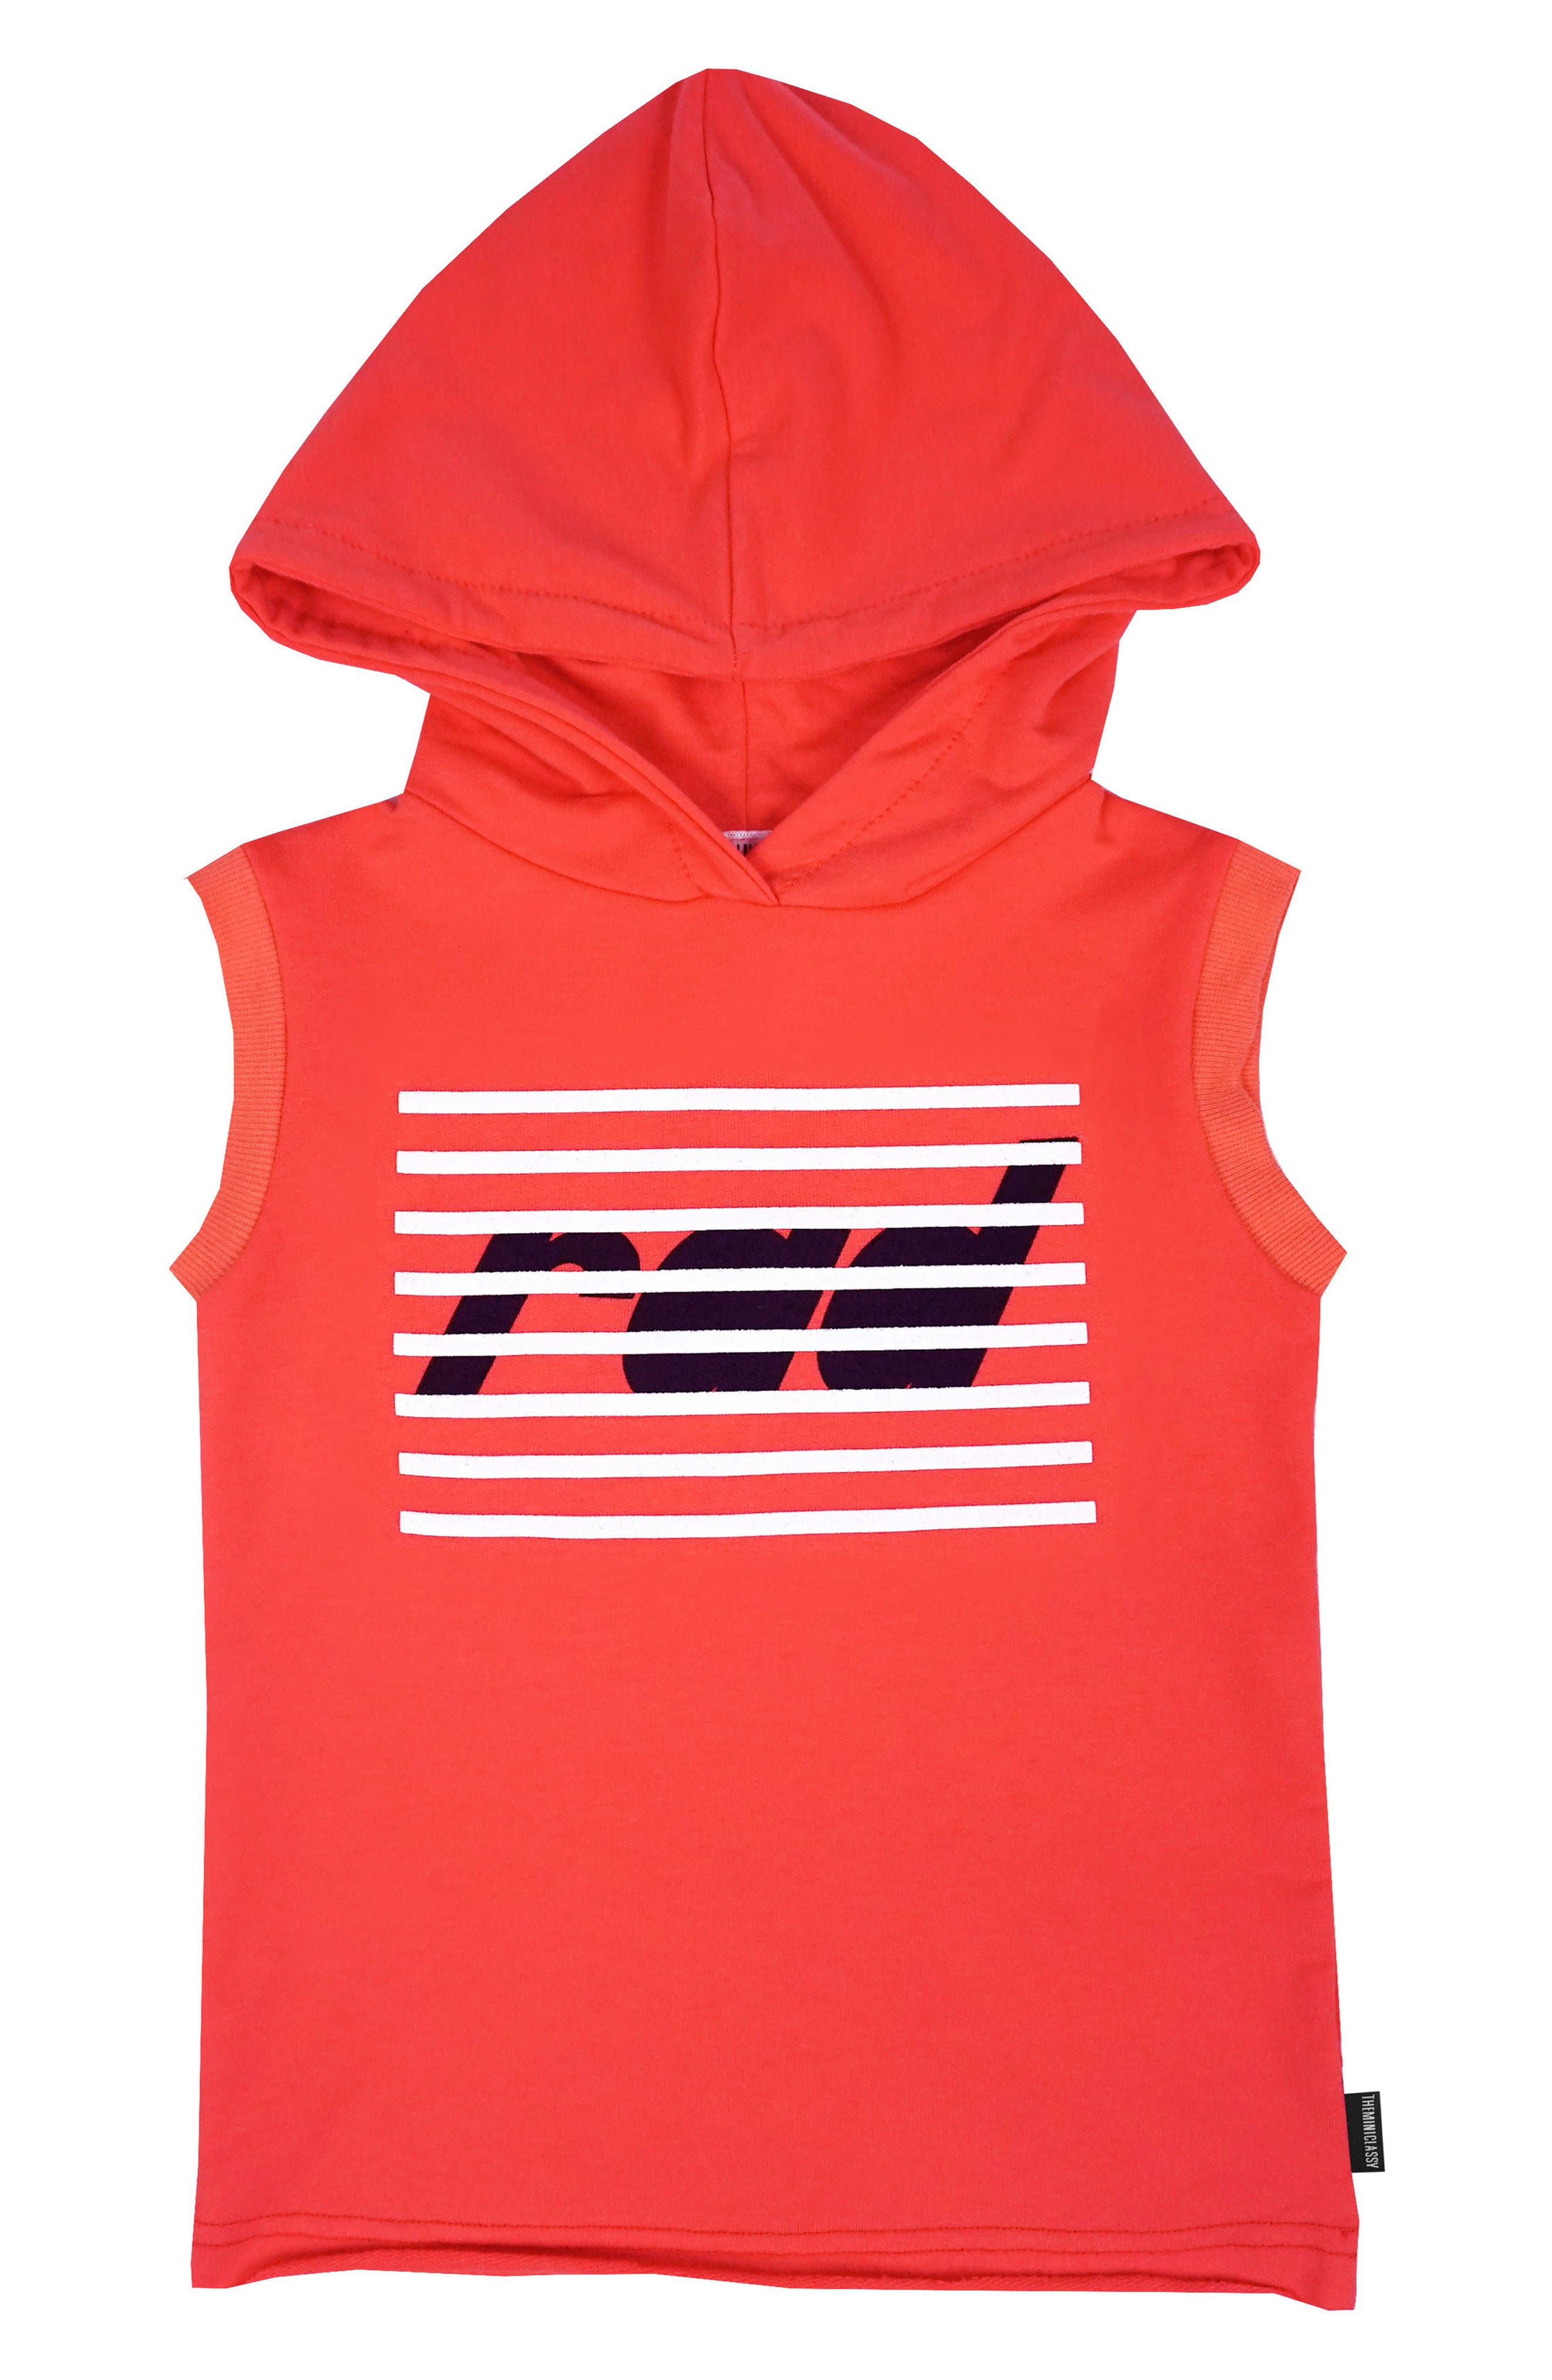 THEMINICLASSY Graphic Sleeveless Hoodie (Toddler Boys, Little Boys & Big Boys)